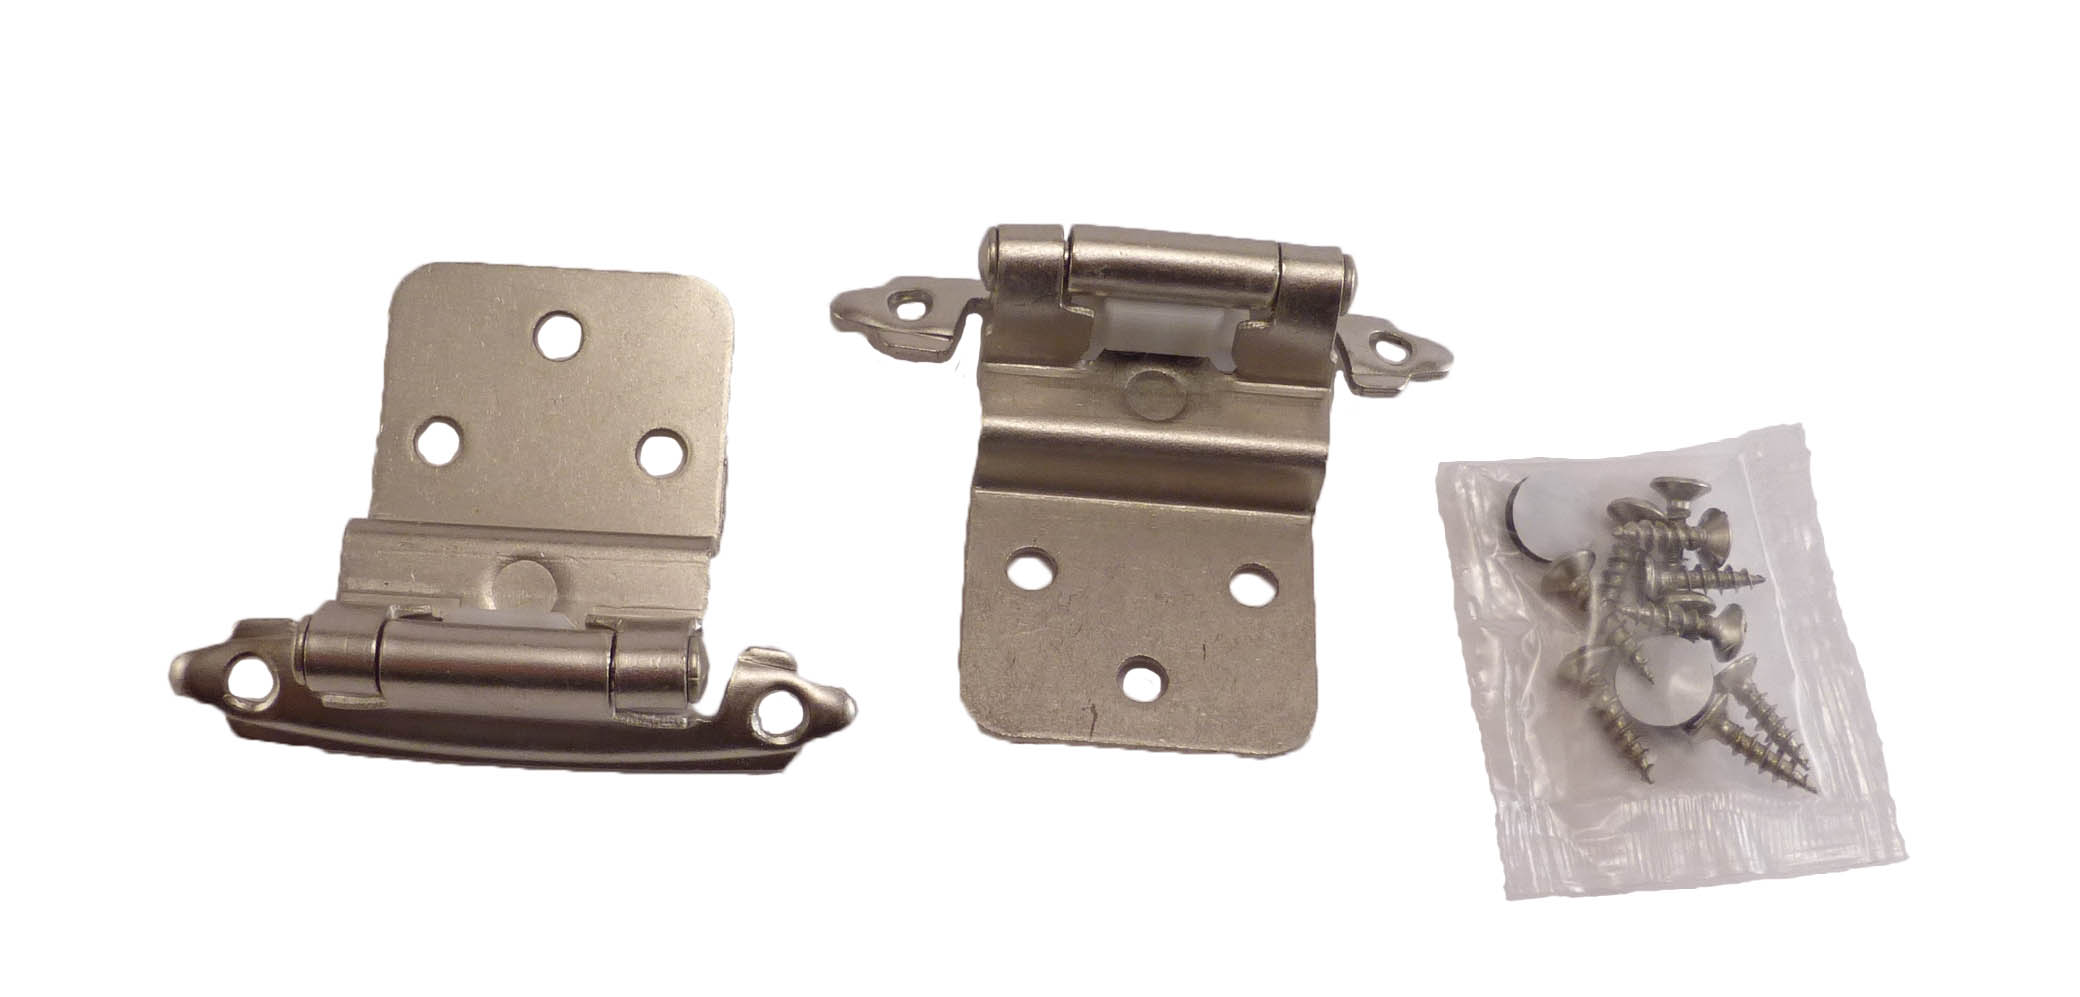 25 Pair 50 Pcs Self Closing Cabinet 3 8 Offset Inset Hinges Satin Nickel 62726 by East West Consolidated